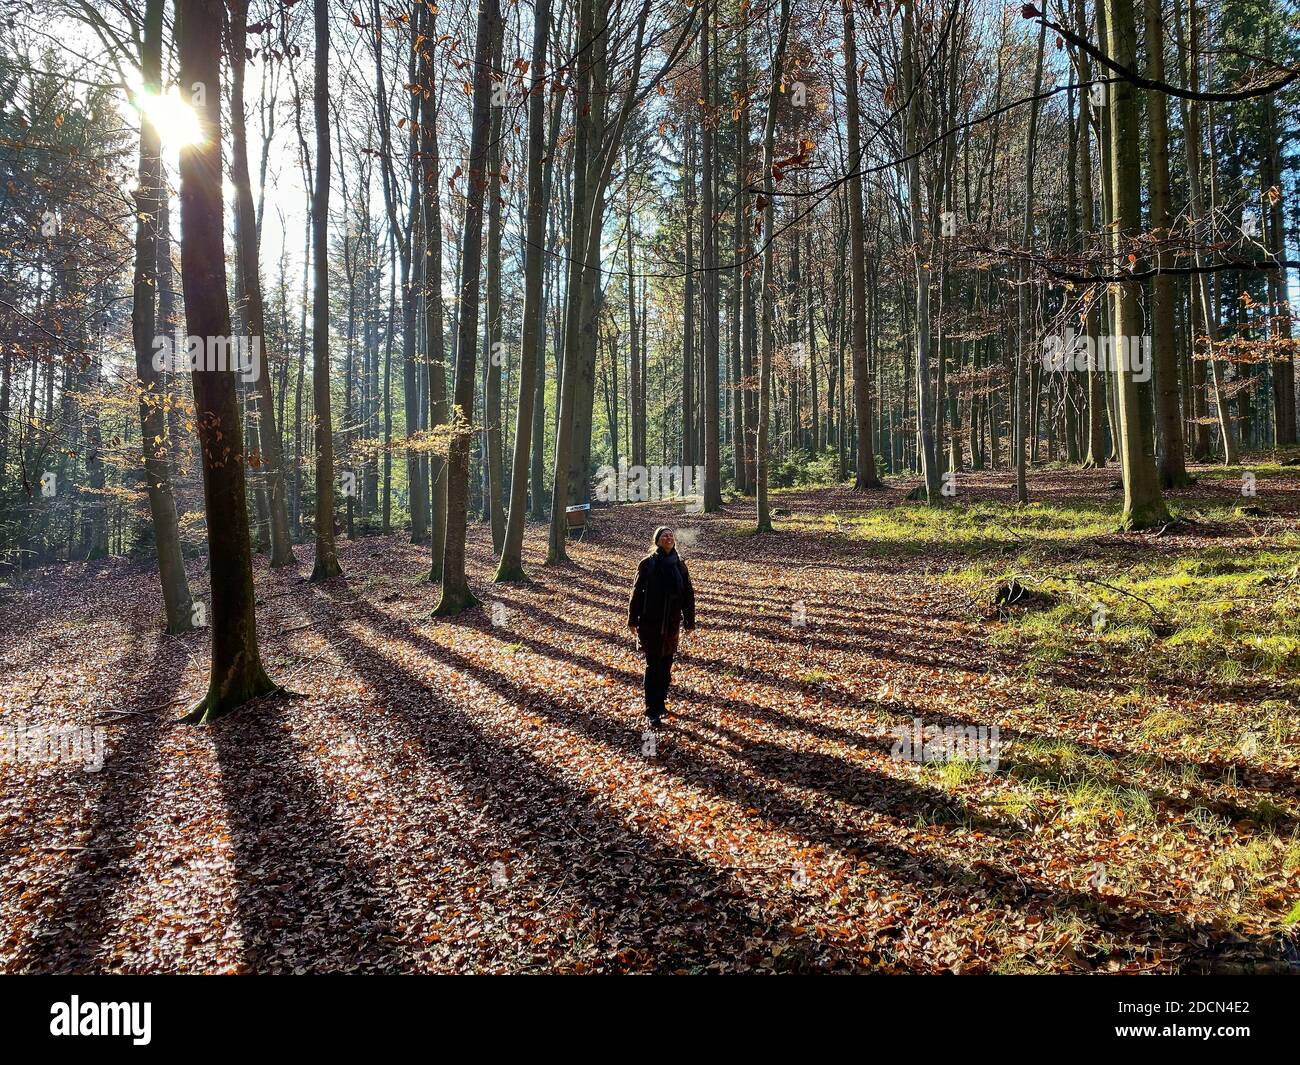 """A woman is walking through the forest in autumn, forest bathing, or shinrin-yoku  on November 22, 2020 in Pfaffenhofen a.d.Ilm, Bavaria, Germany. Forest bath – has the power to counter illnesses including cancer, strokes, gastric ulcers, depression. The term emerged in Japan in the 1980s as a physiological and psychological exercise called shinrin-yoku (""""forest bathing"""" or """"taking in the forest). © Peter Schatz / Alamy Stock Photos  MODEL RELEASED Stock Photo"""